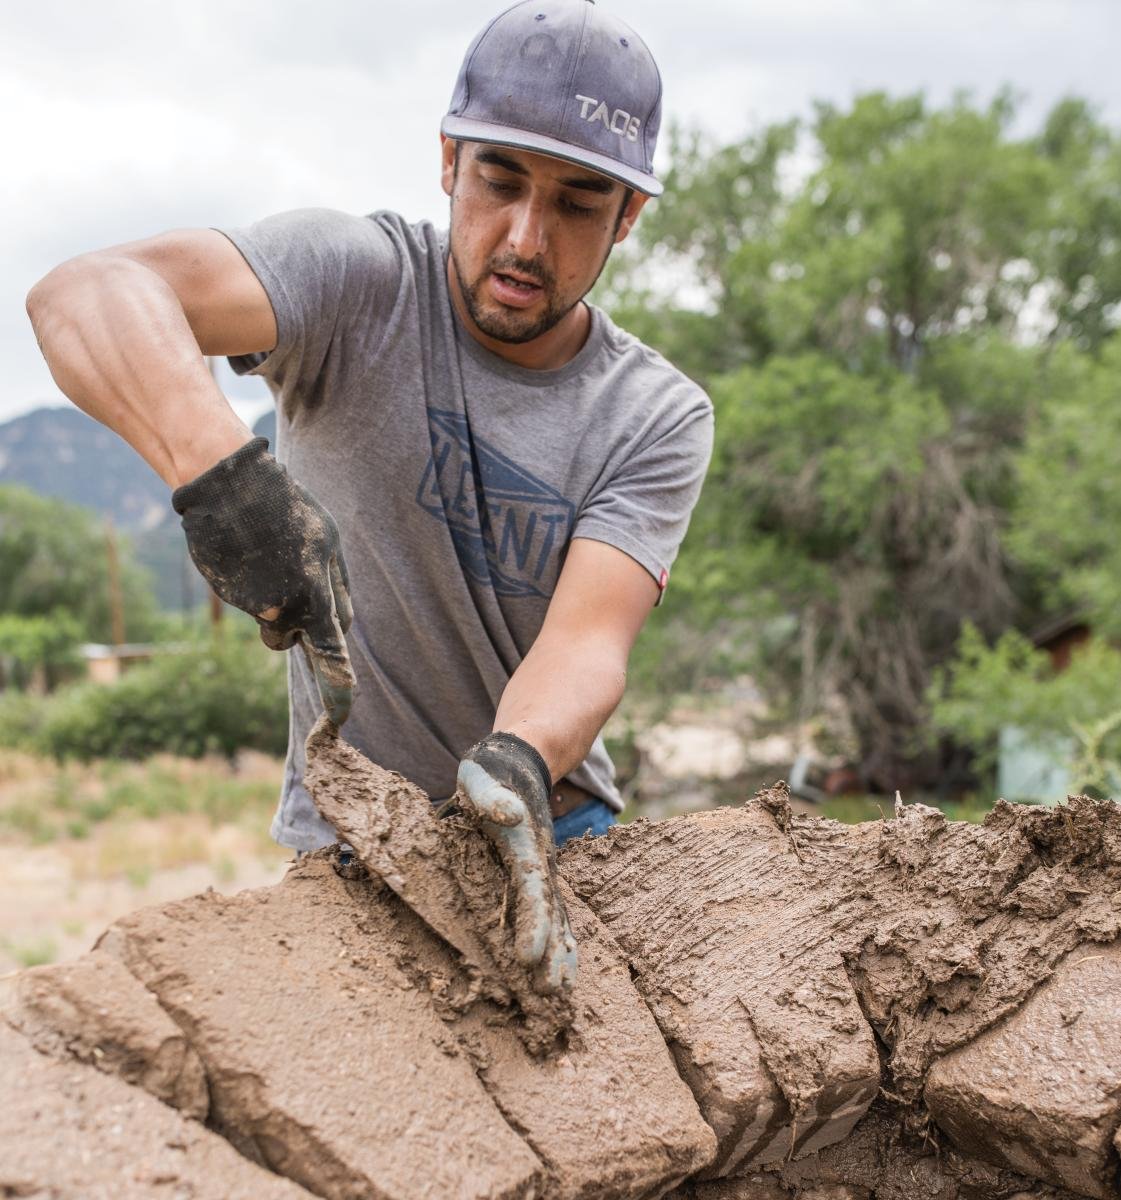 Volunteer Miguel Gonzales helps build Quesa's Farmers' Market horno